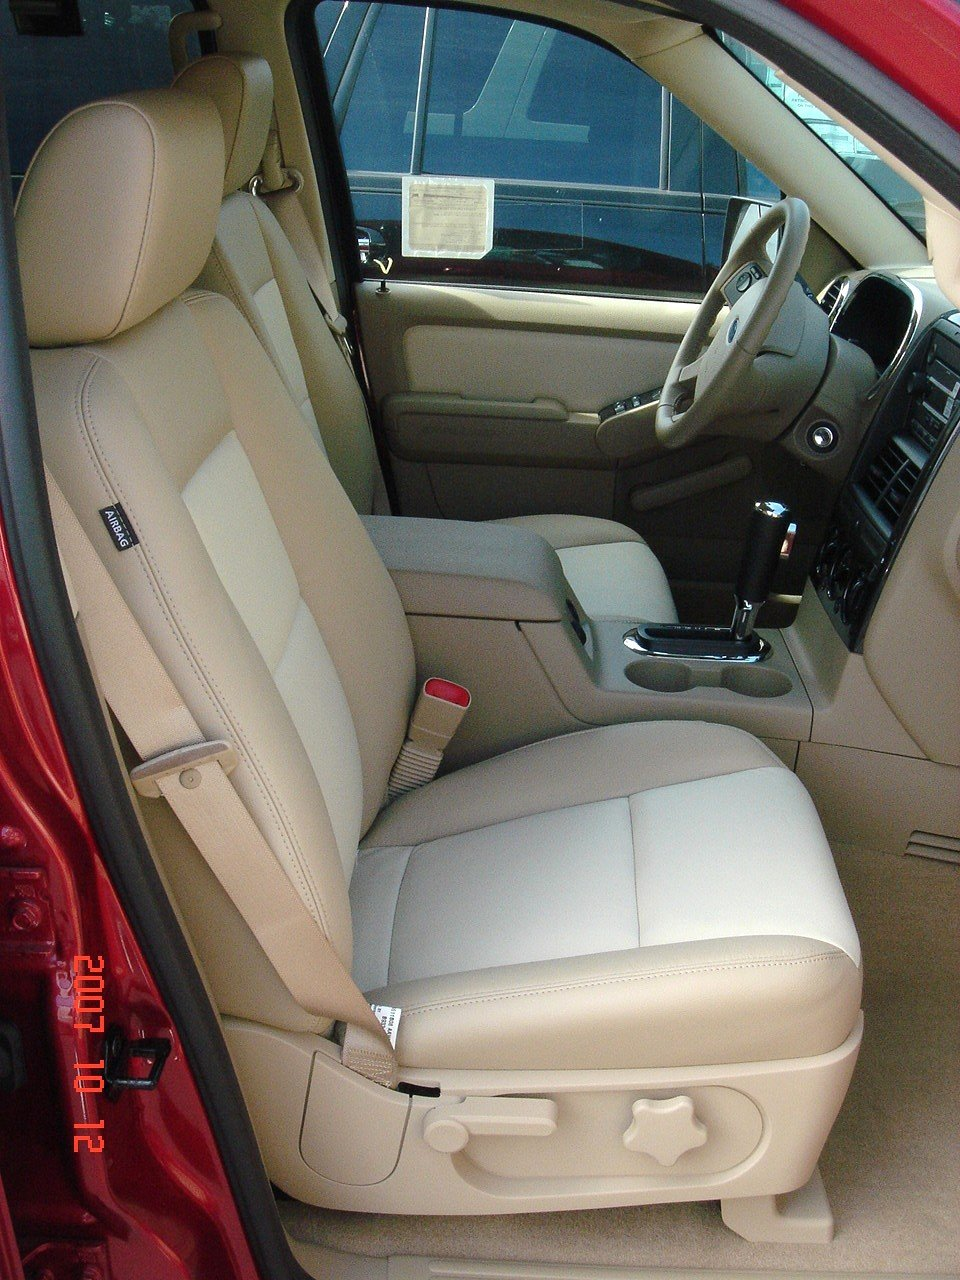 Outstanding Durafit Seat Covers 2006 2008 Explorer Front Bucket Seats With Side Impact Airbags In Seats Made In Tan Velour Andrewgaddart Wooden Chair Designs For Living Room Andrewgaddartcom